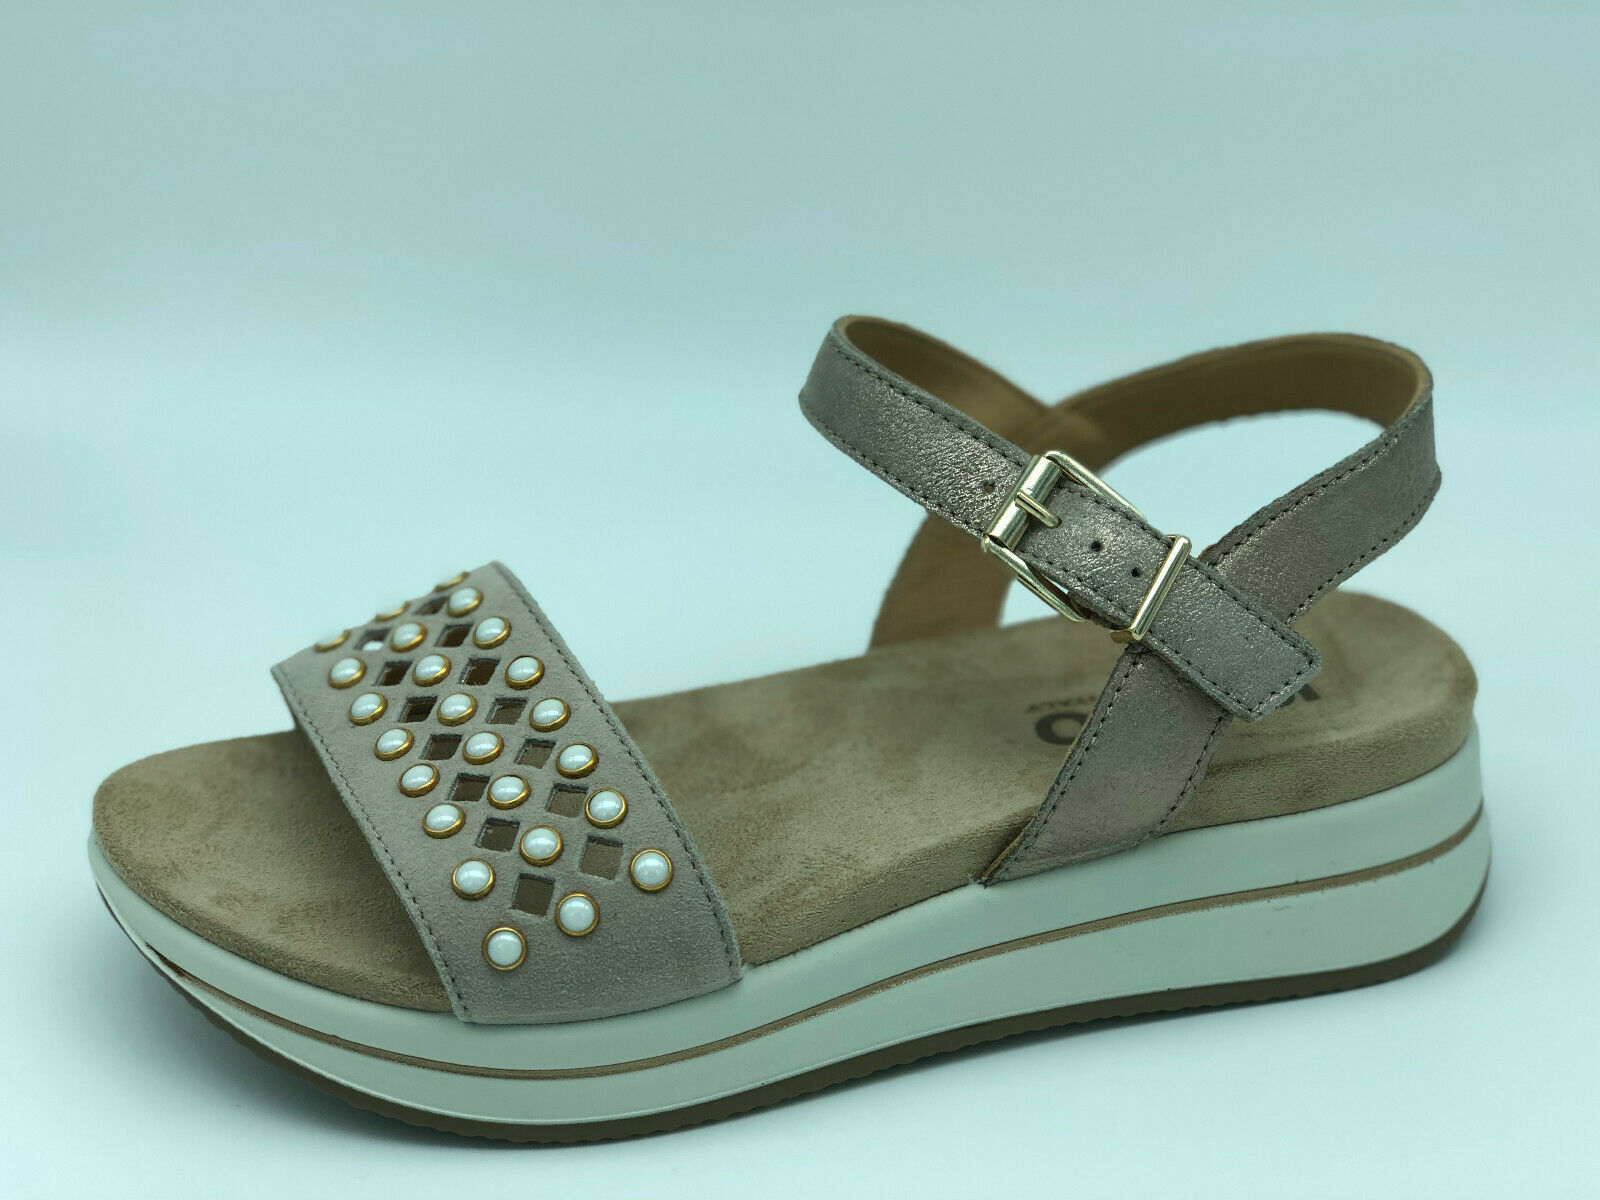 Igi&co Sandals 3169733 Leather and Suede Studded Wedge Beige 4,5 cm